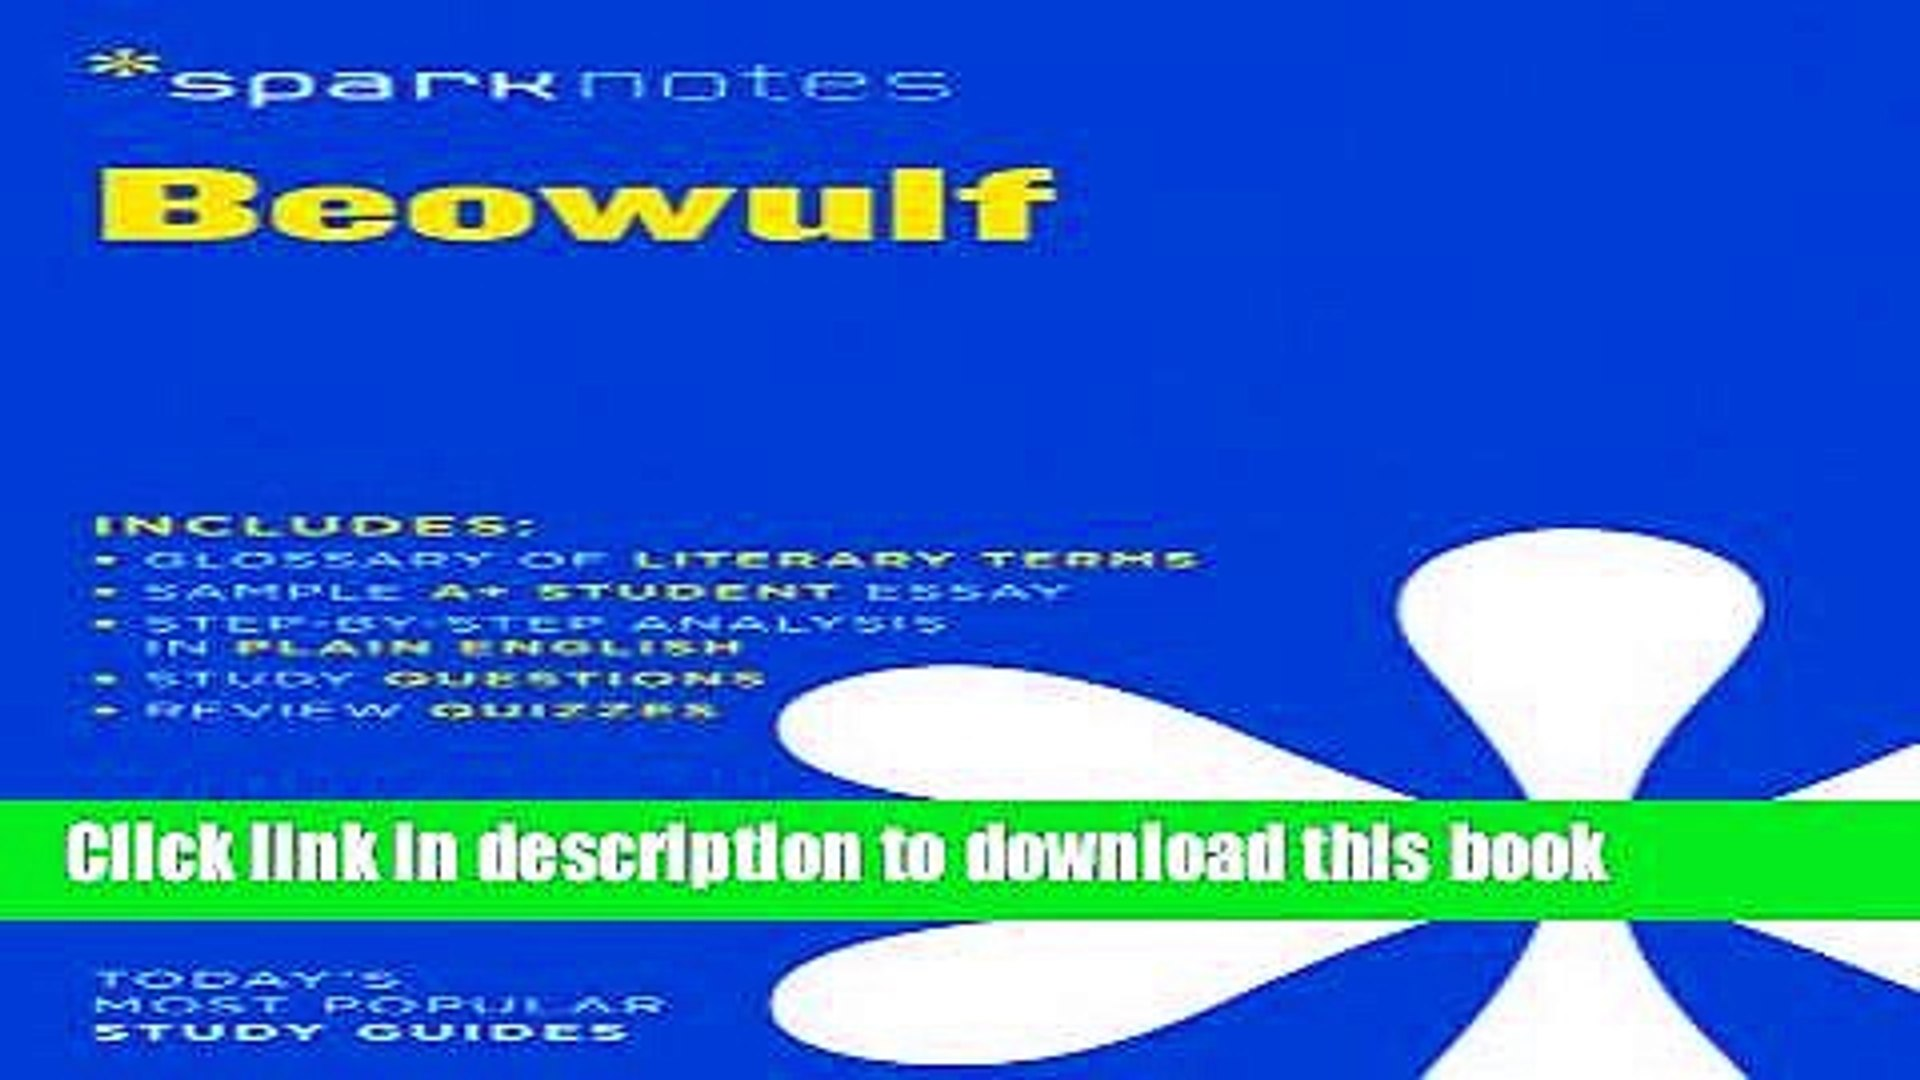 Read Beowulf Sparknotes Literature Guide Sparknotes Literature Guide Series Pdf Online Video Dailymotion Download beowulf sparknotes literature guide read online. dailymotion